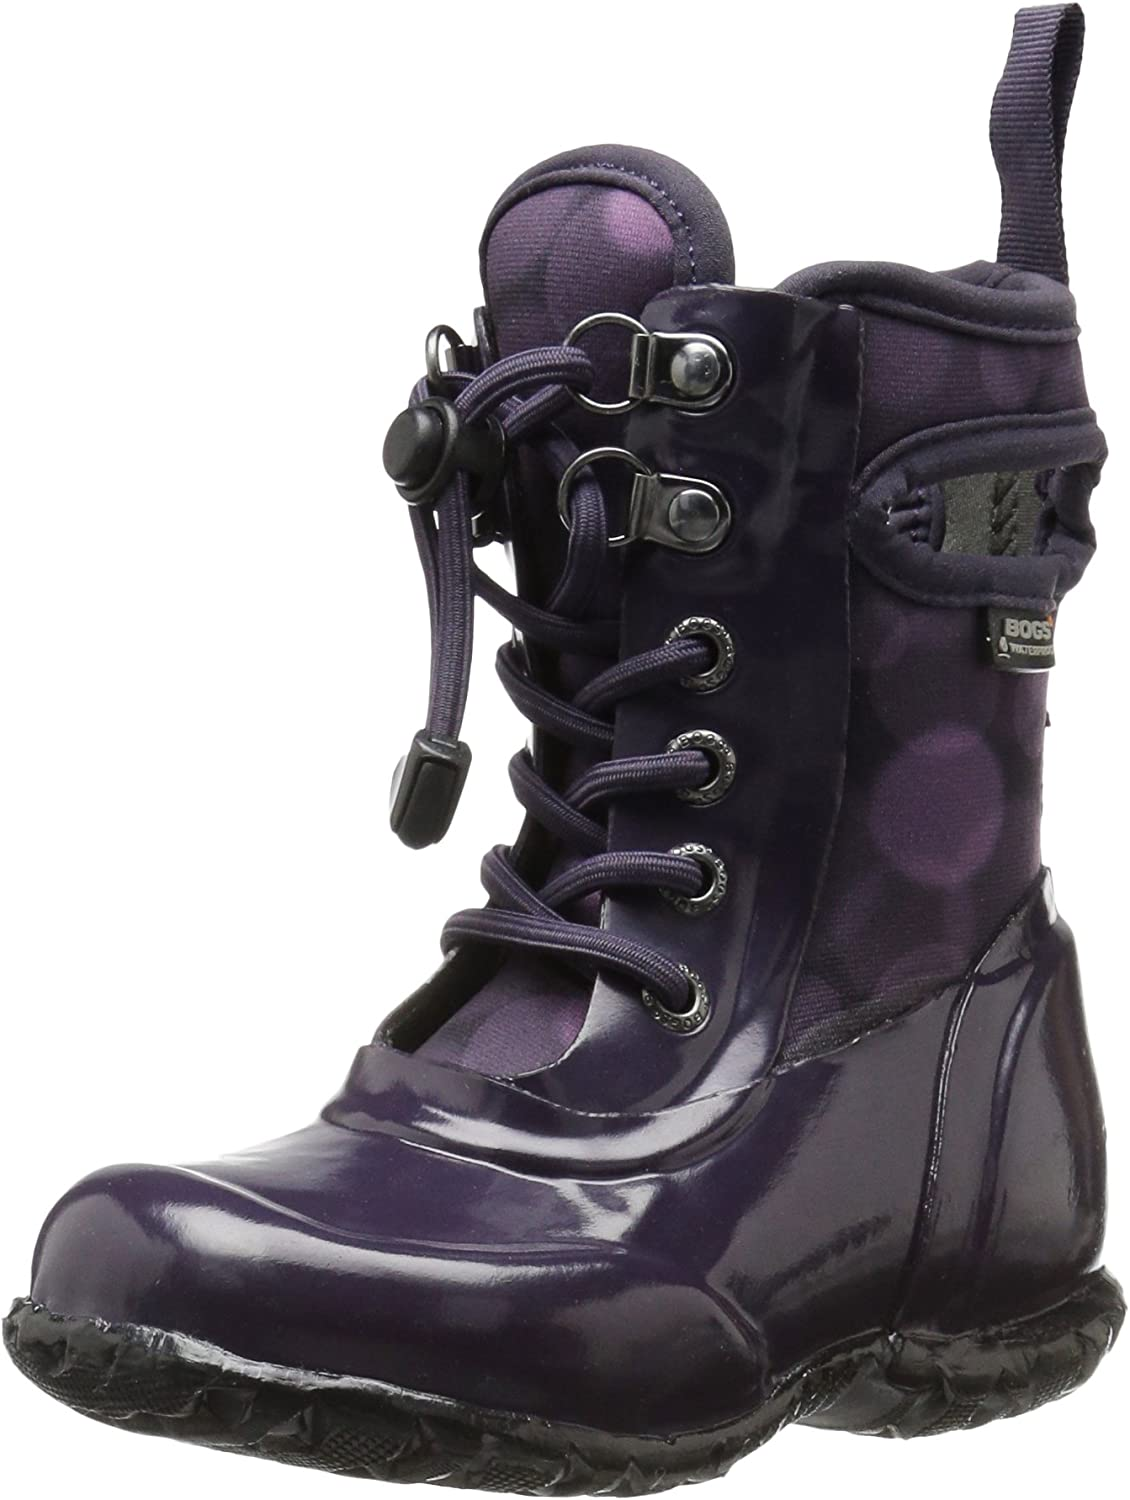 Bogs Sidney Kids Waterproof Ranking TOP14 Lace Ranking integrated 1st place Up Girl for and Boot Boys Rain